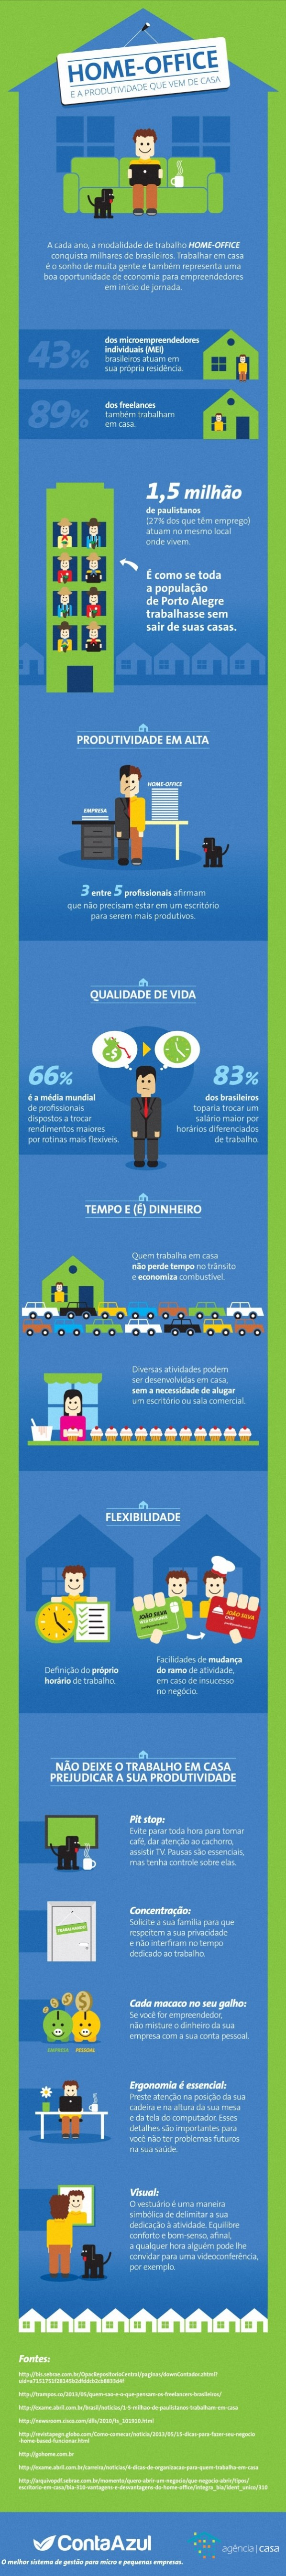 infografico home office